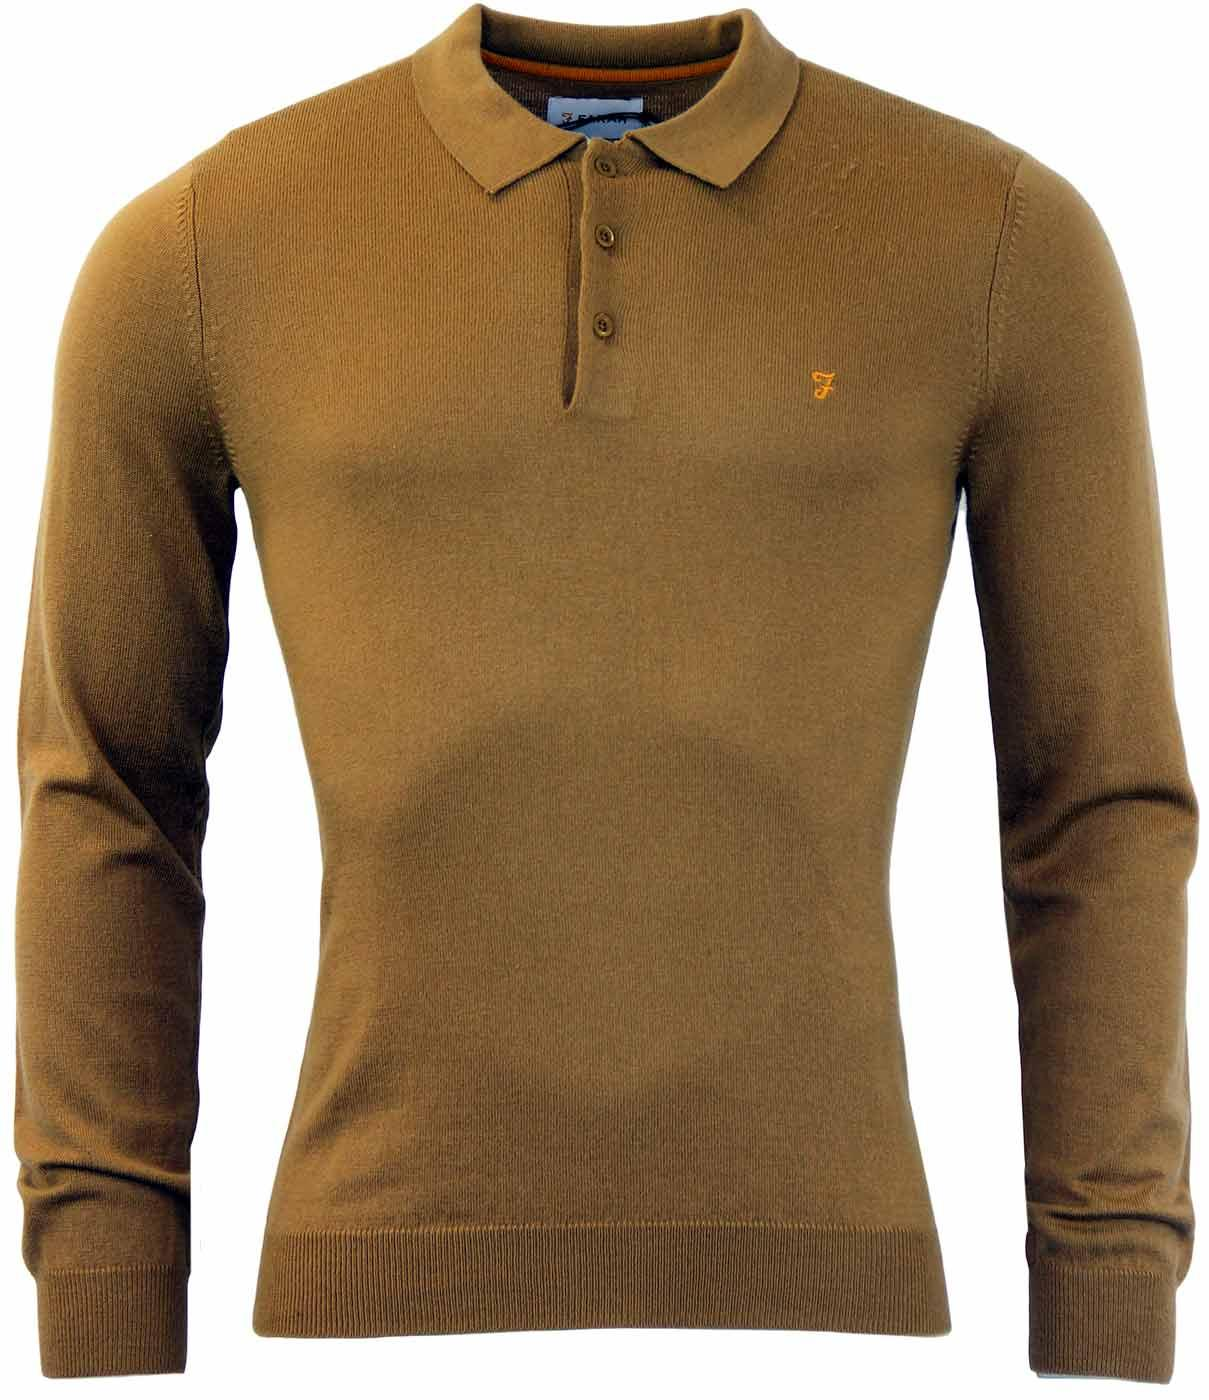 The Affery FARAH VINTAGE Retro Mod Merino Polo (C)